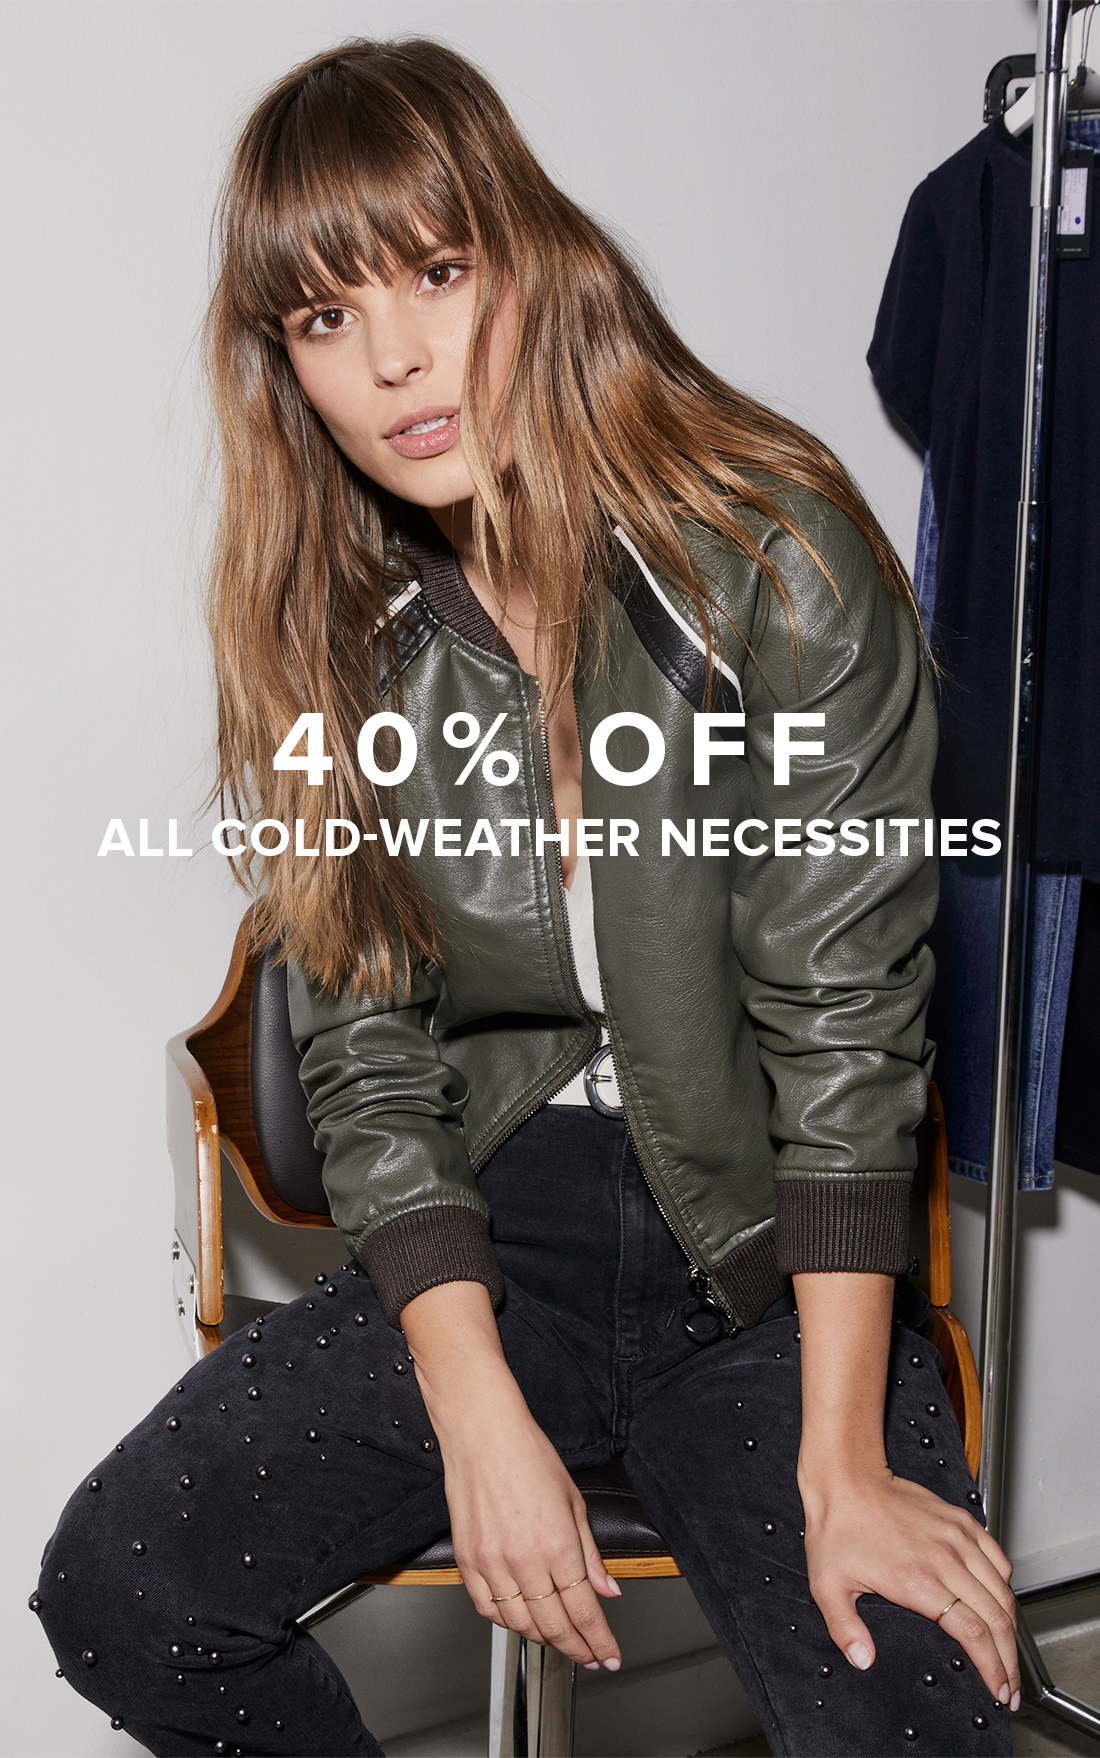 40% Off All Cold-Weather Necessities